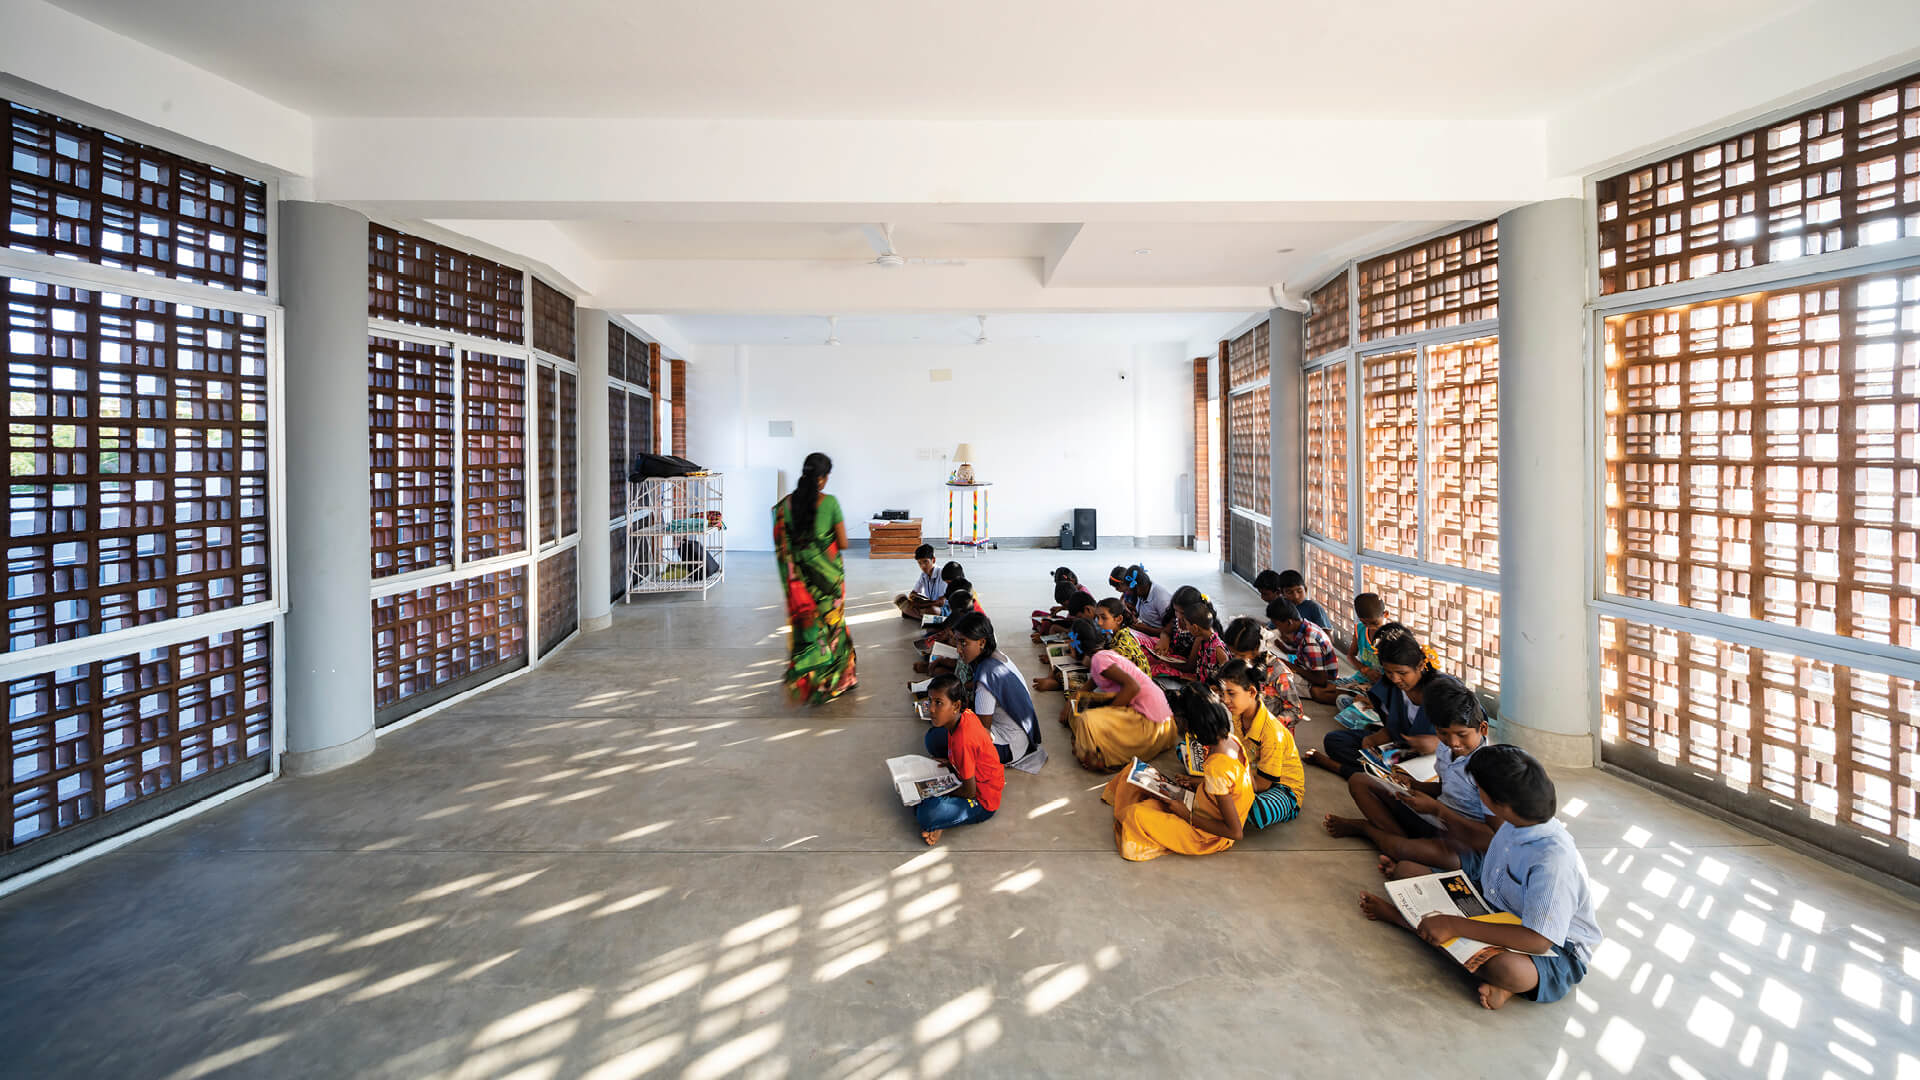 Sharana Daycare Facility designed by Anupama Kundoo Architects in Pondicherry, Tamil Nadu, India| Sharana Daycare Facility | Anupama Kundoo Architects | STIRworld